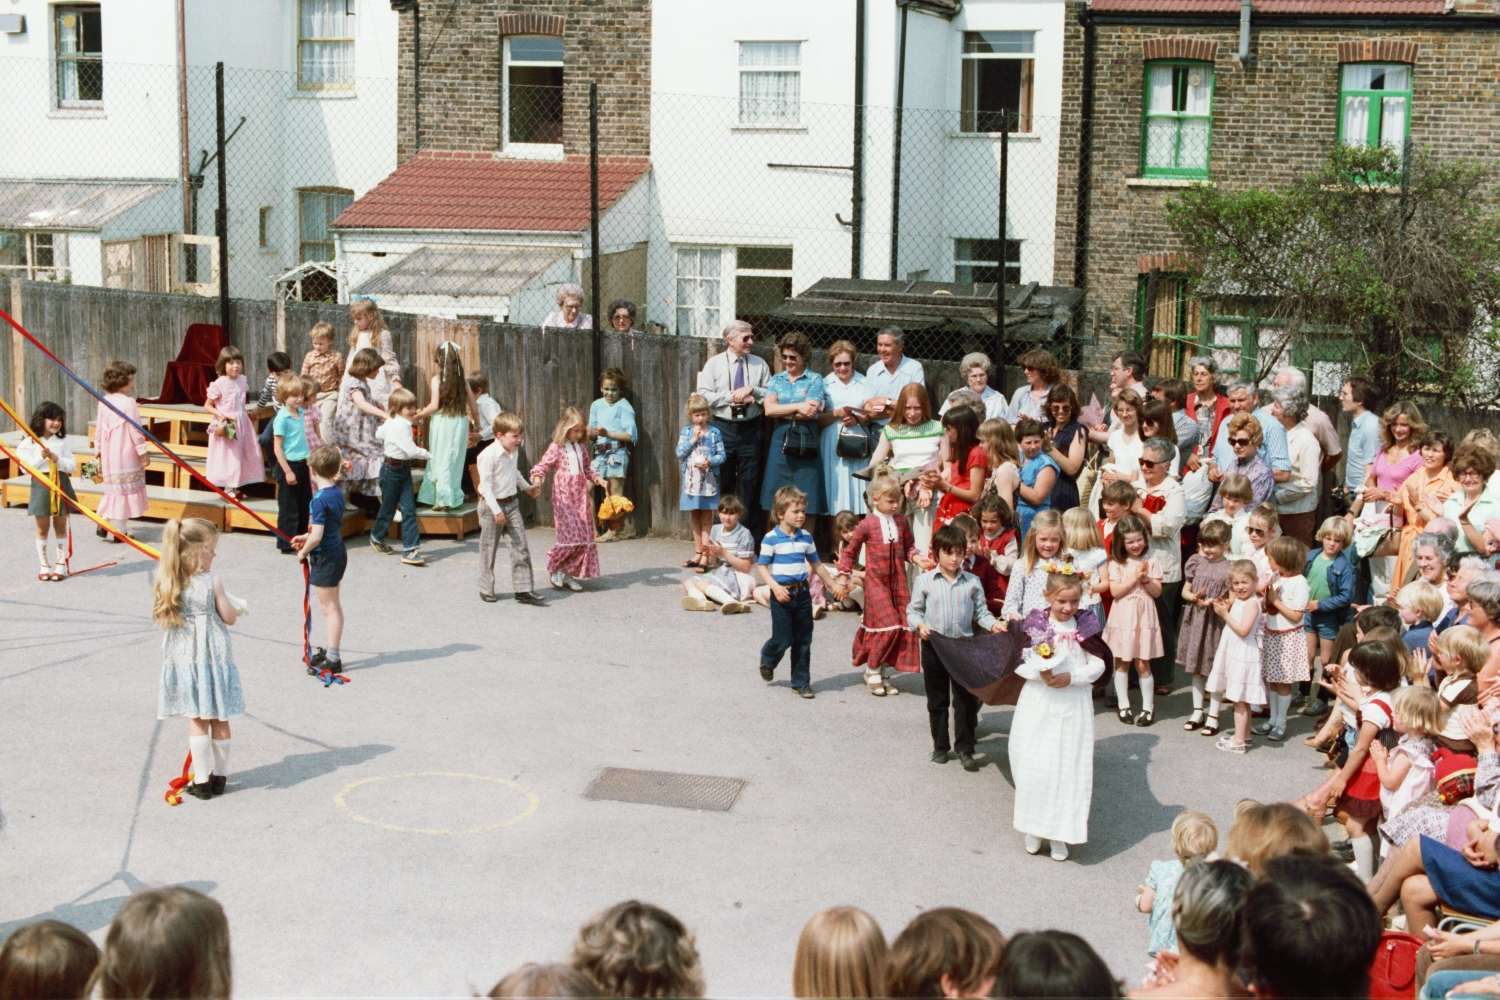 Maypole Dancing at Wells Primary School in Woodford Green, Essex